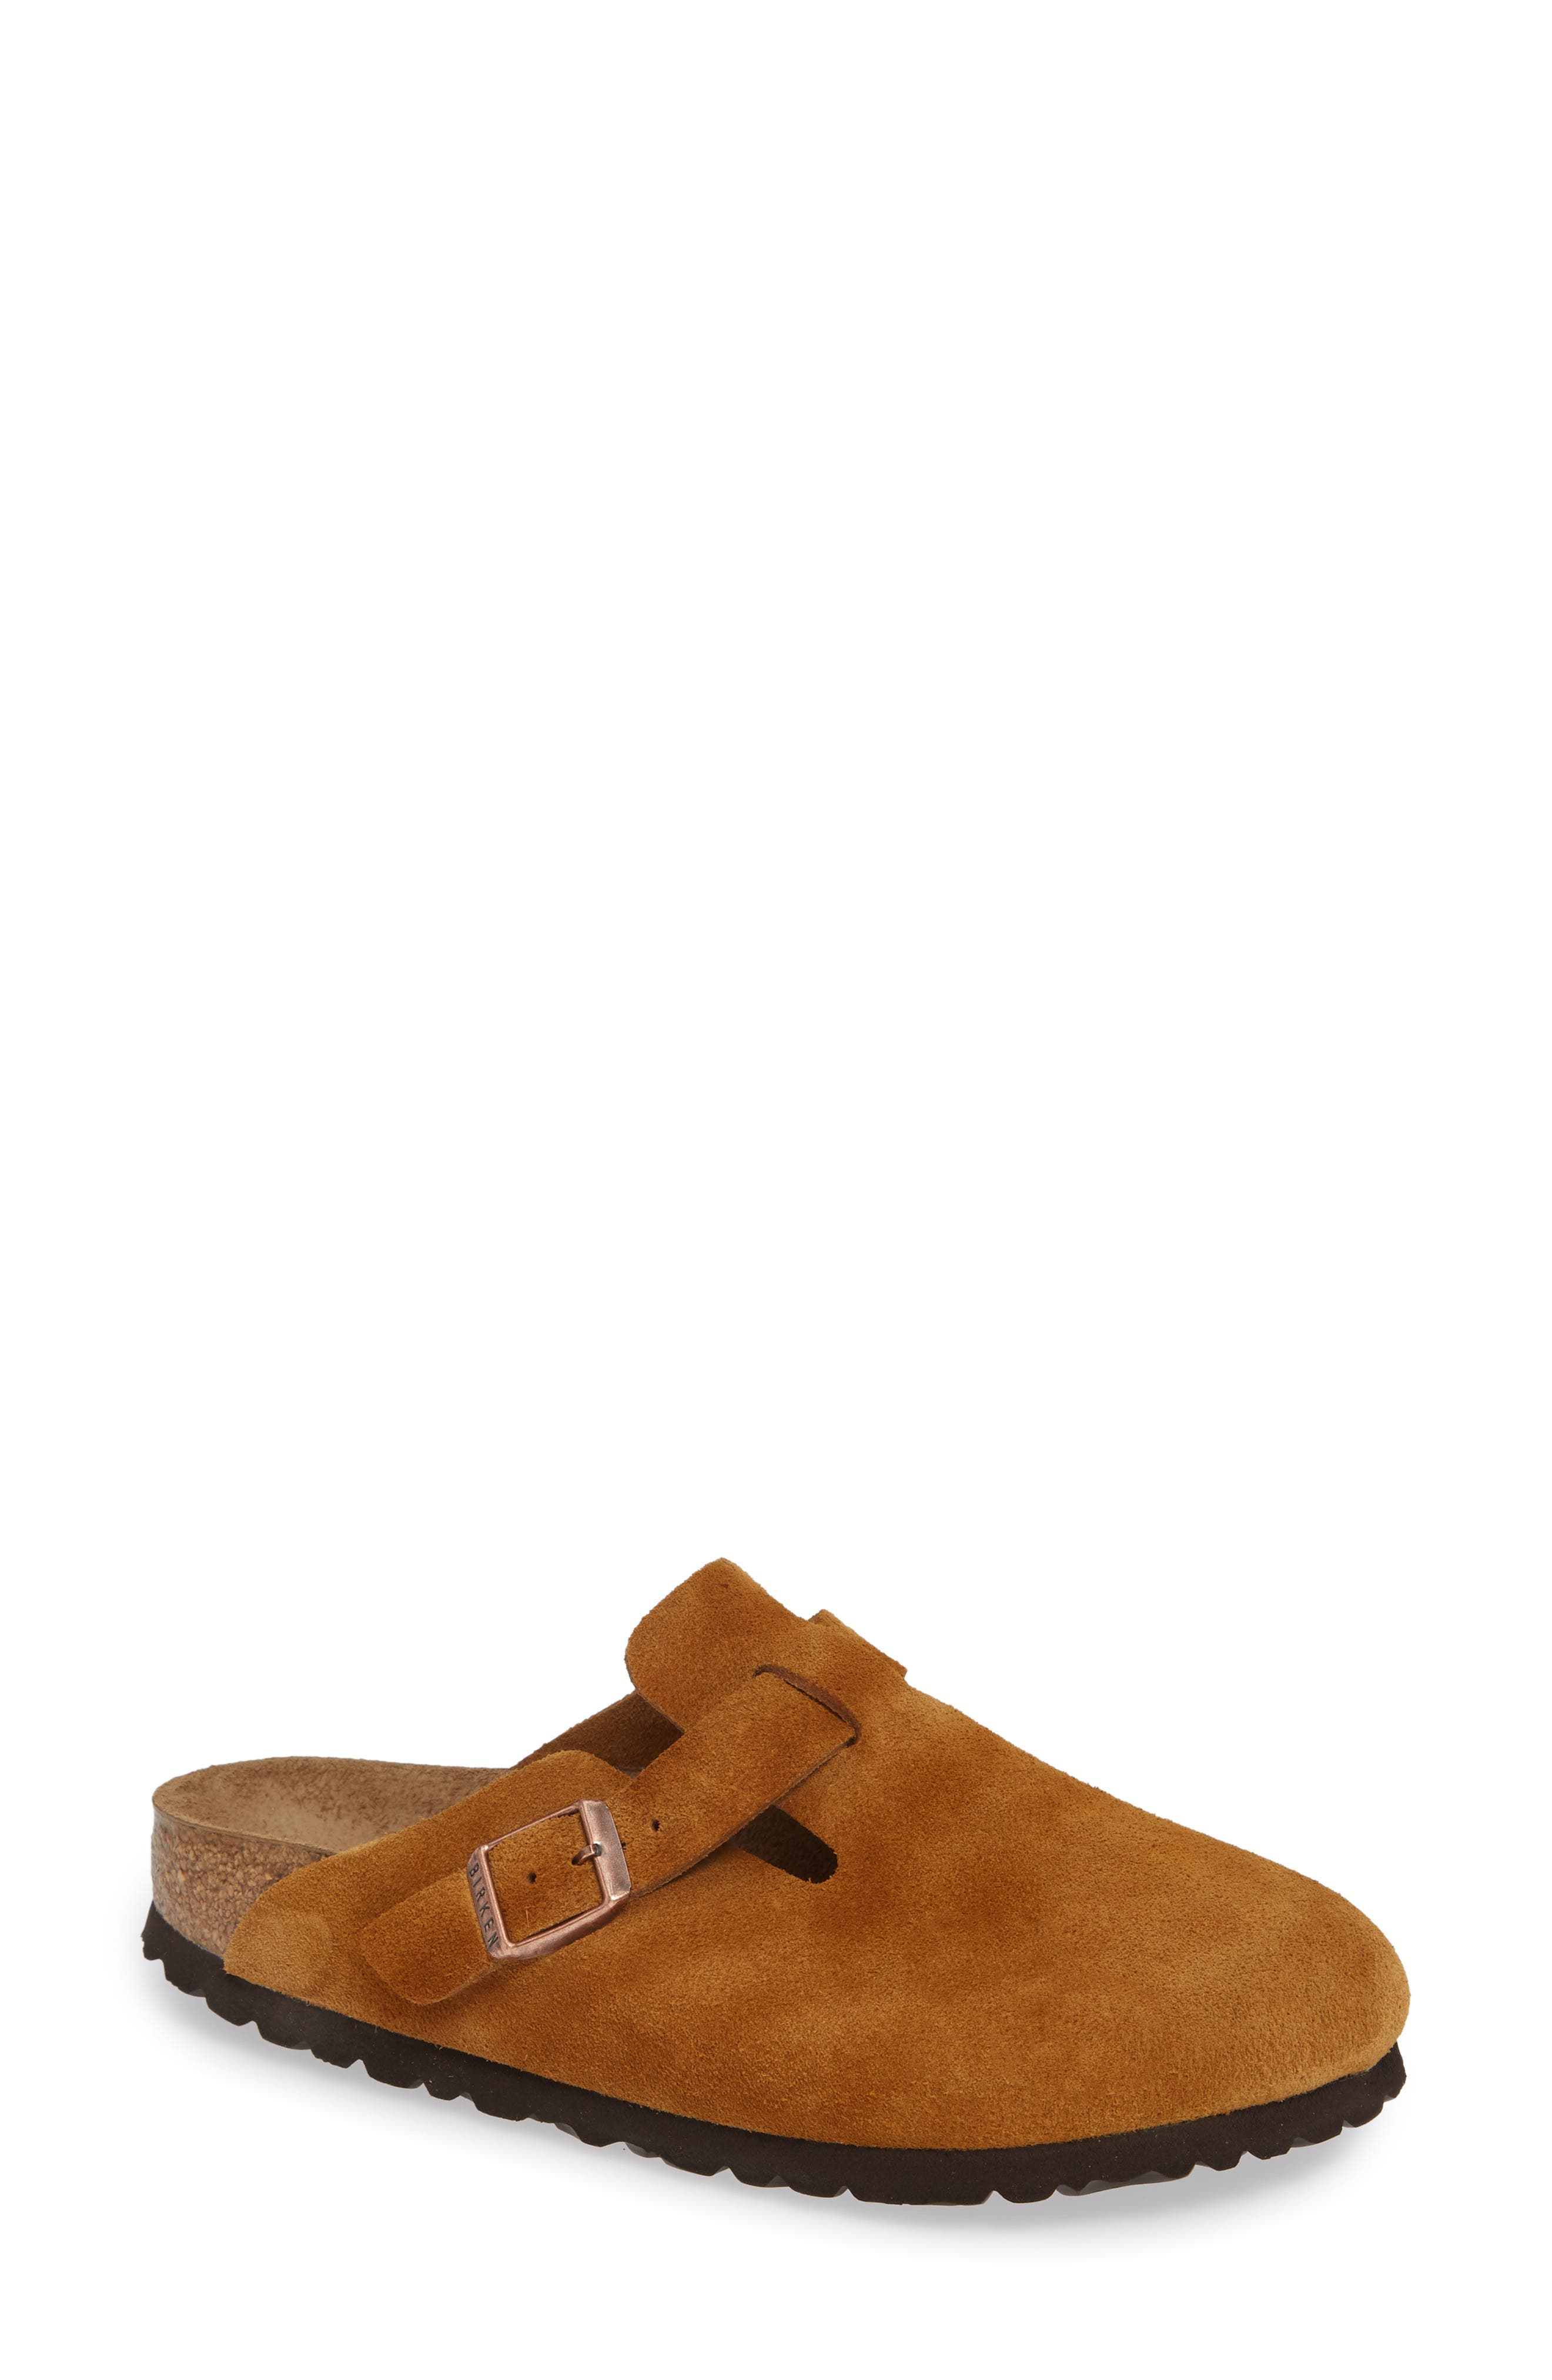 'Boston' Soft Footbed Clog,                         Main,                         color, MINK SUEDE